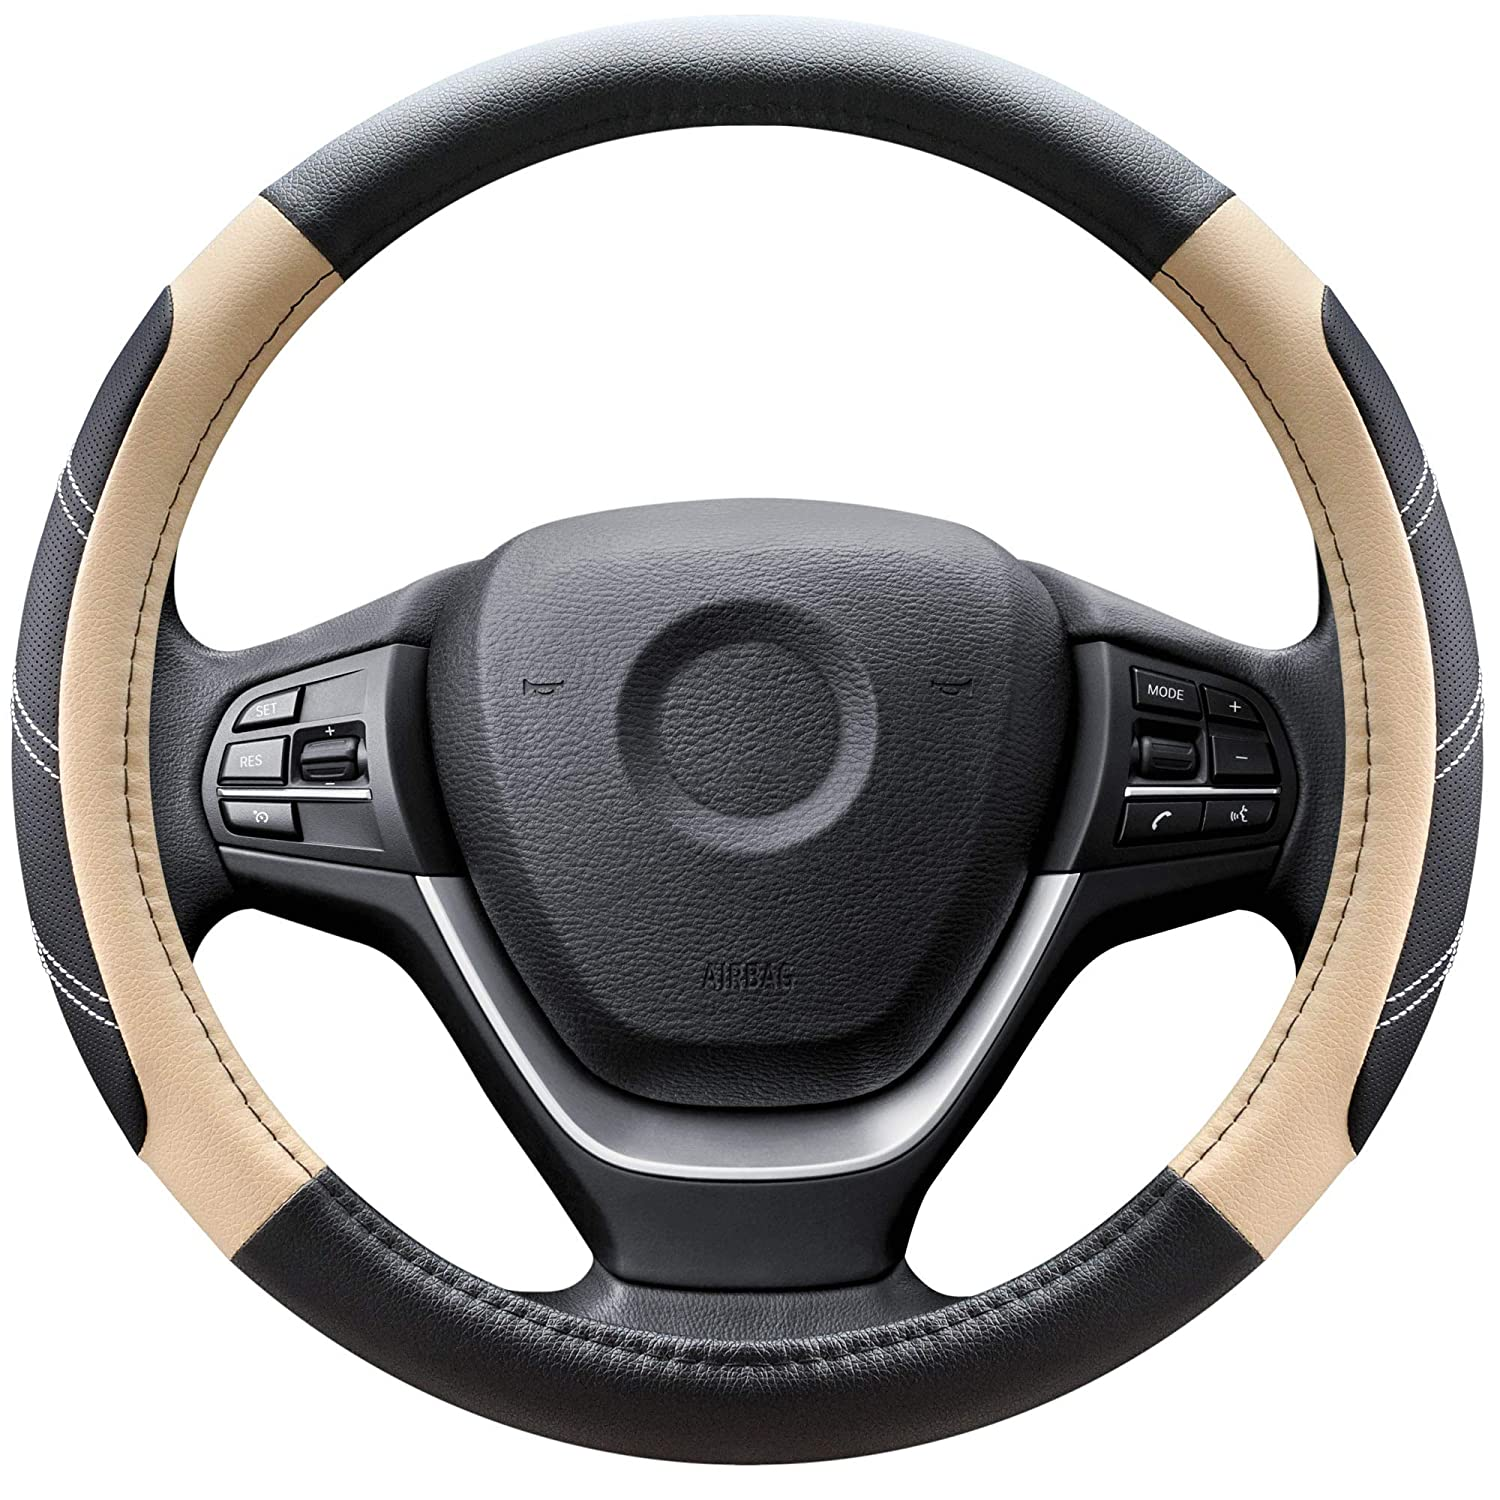 Elantrip Leather Steering Wheel Cover 15 1//2 to 16 inch Universal Large Soft Grip Breathable for Car Truck SUV Jeep Anti Slip Black